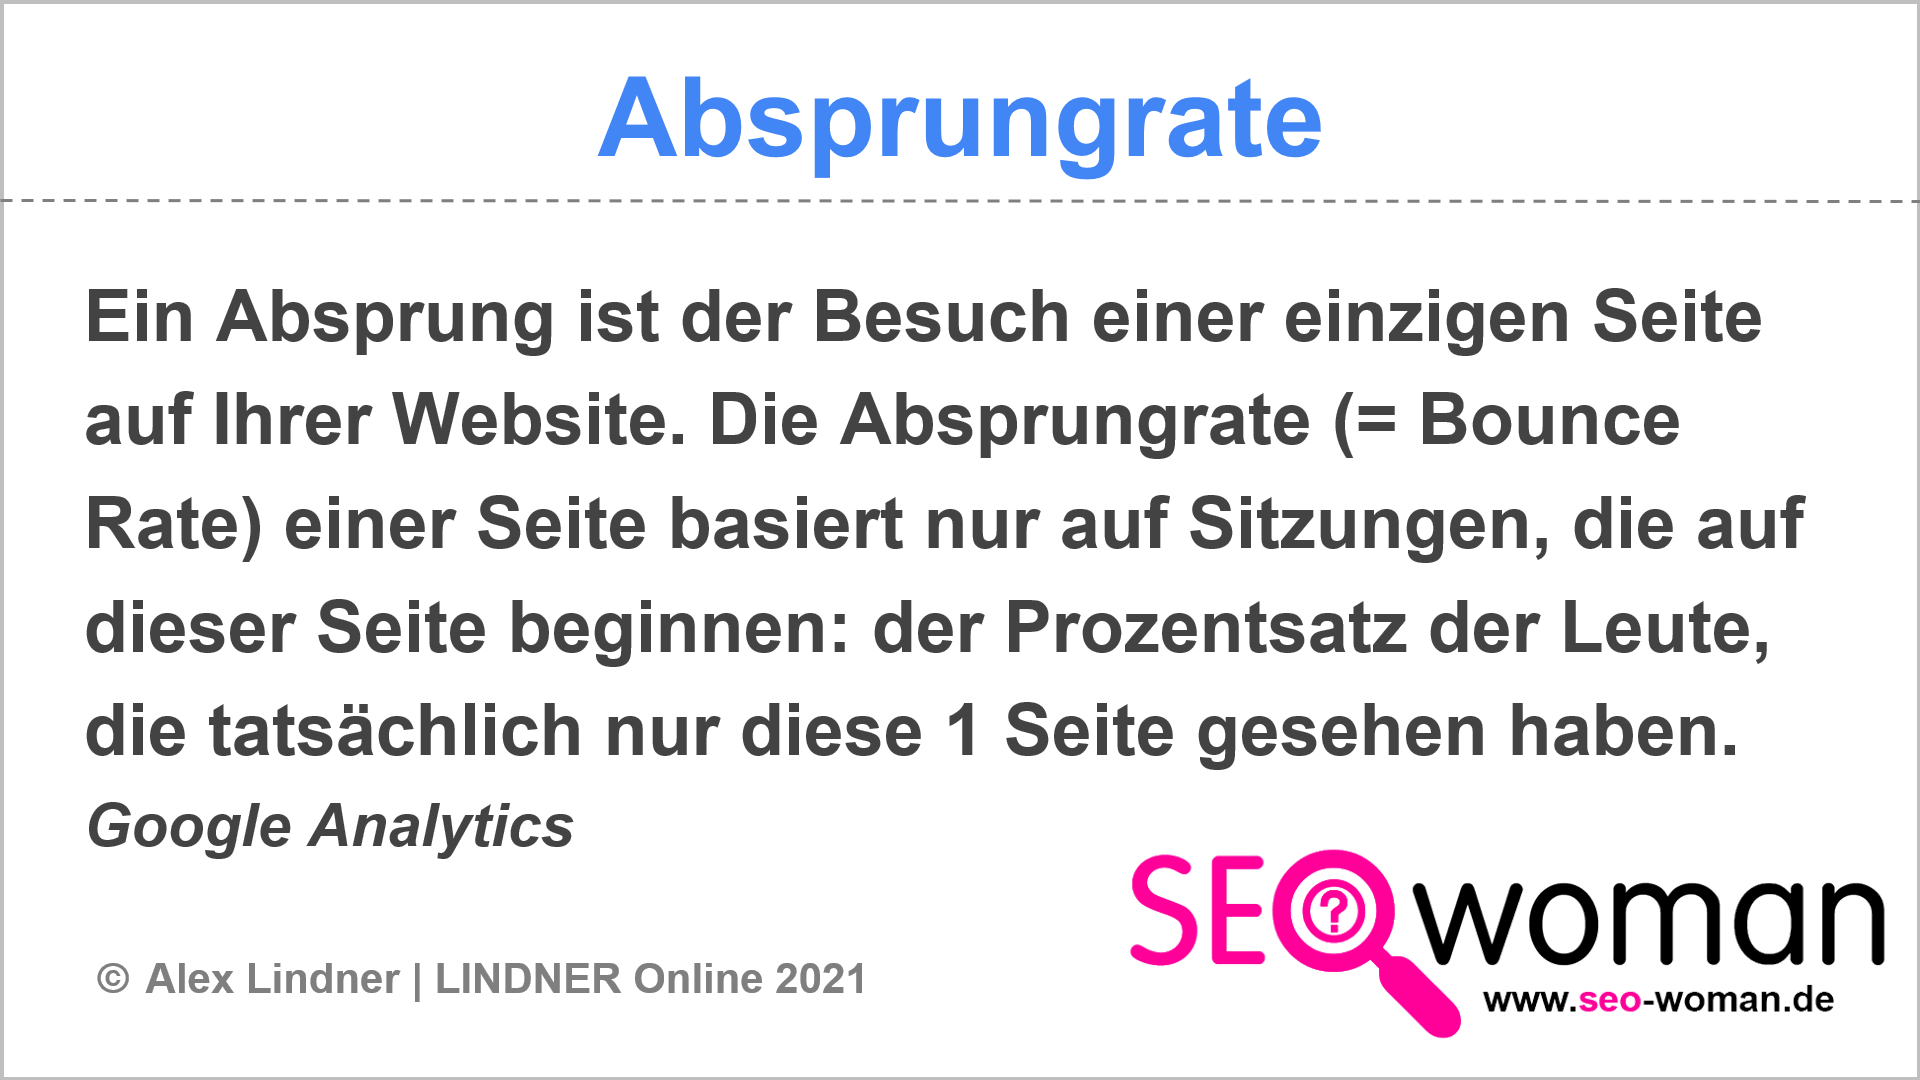 Absprungrate (Bounce-Rate)